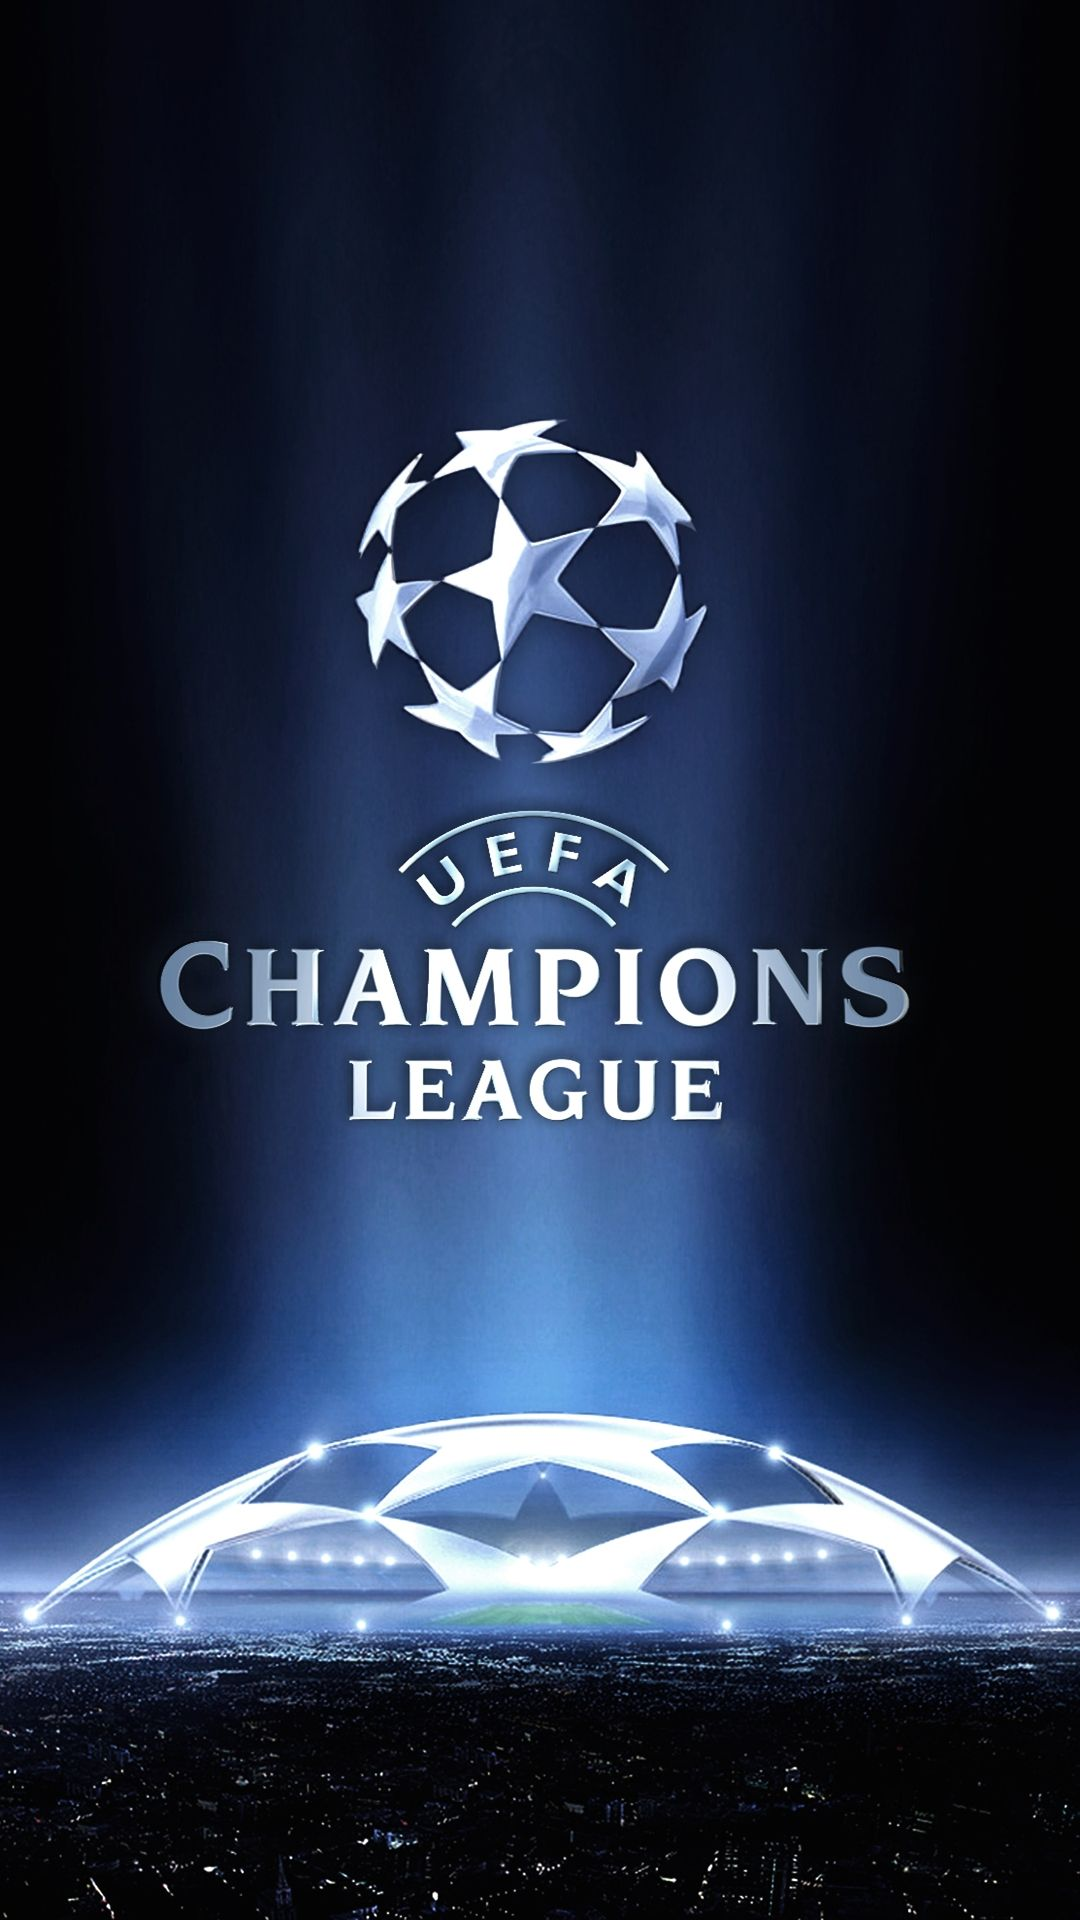 tap and get the free app sport uefa champions league logo navy blue european football soccer shinin futebol europeu papel de parede futebol fotos de futebol sport uefa champions league logo navy